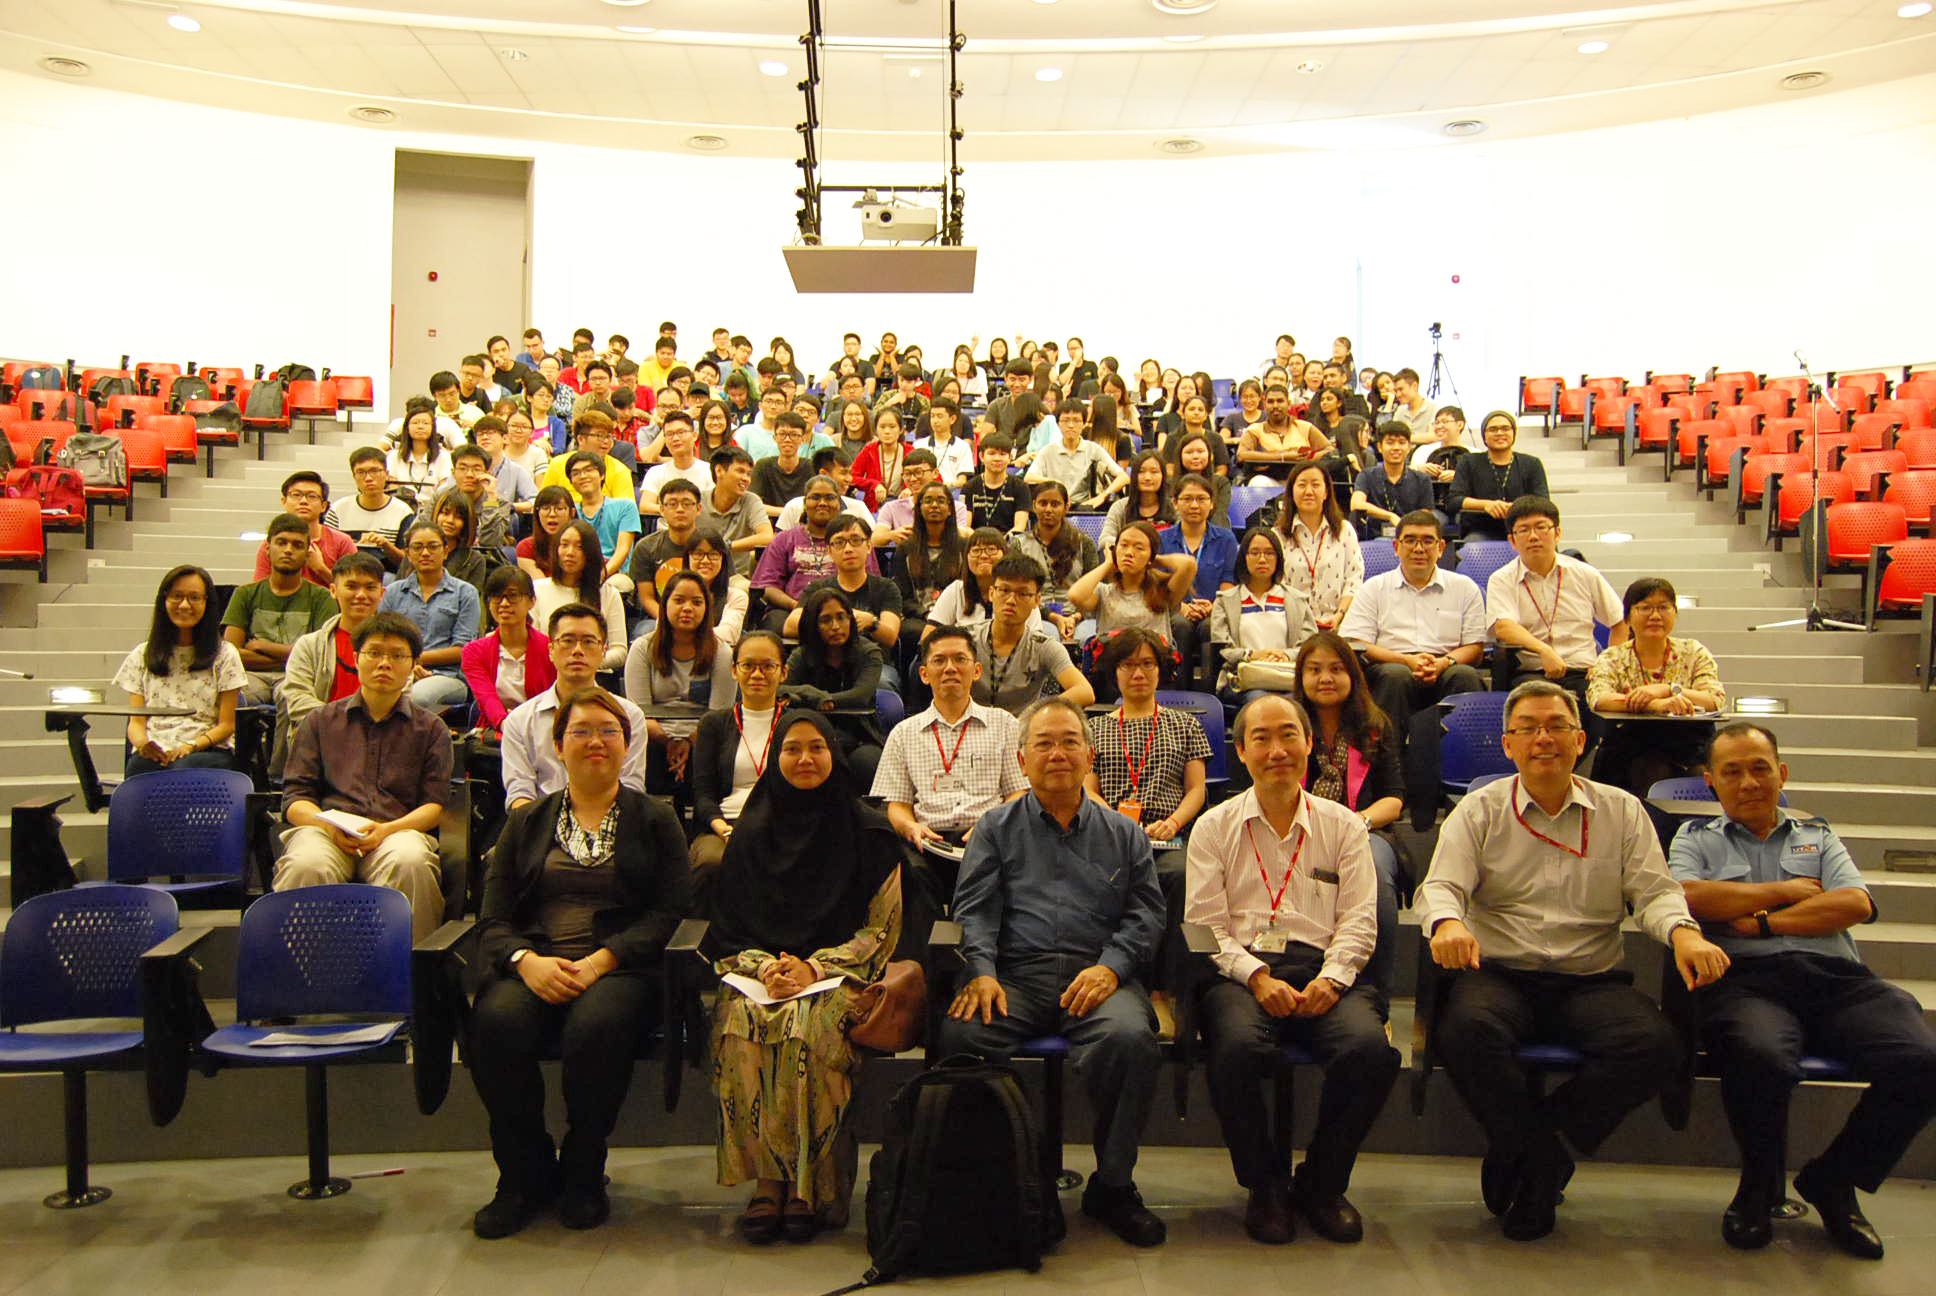 Stuart Soo group photograph with the participants at the end of the talk